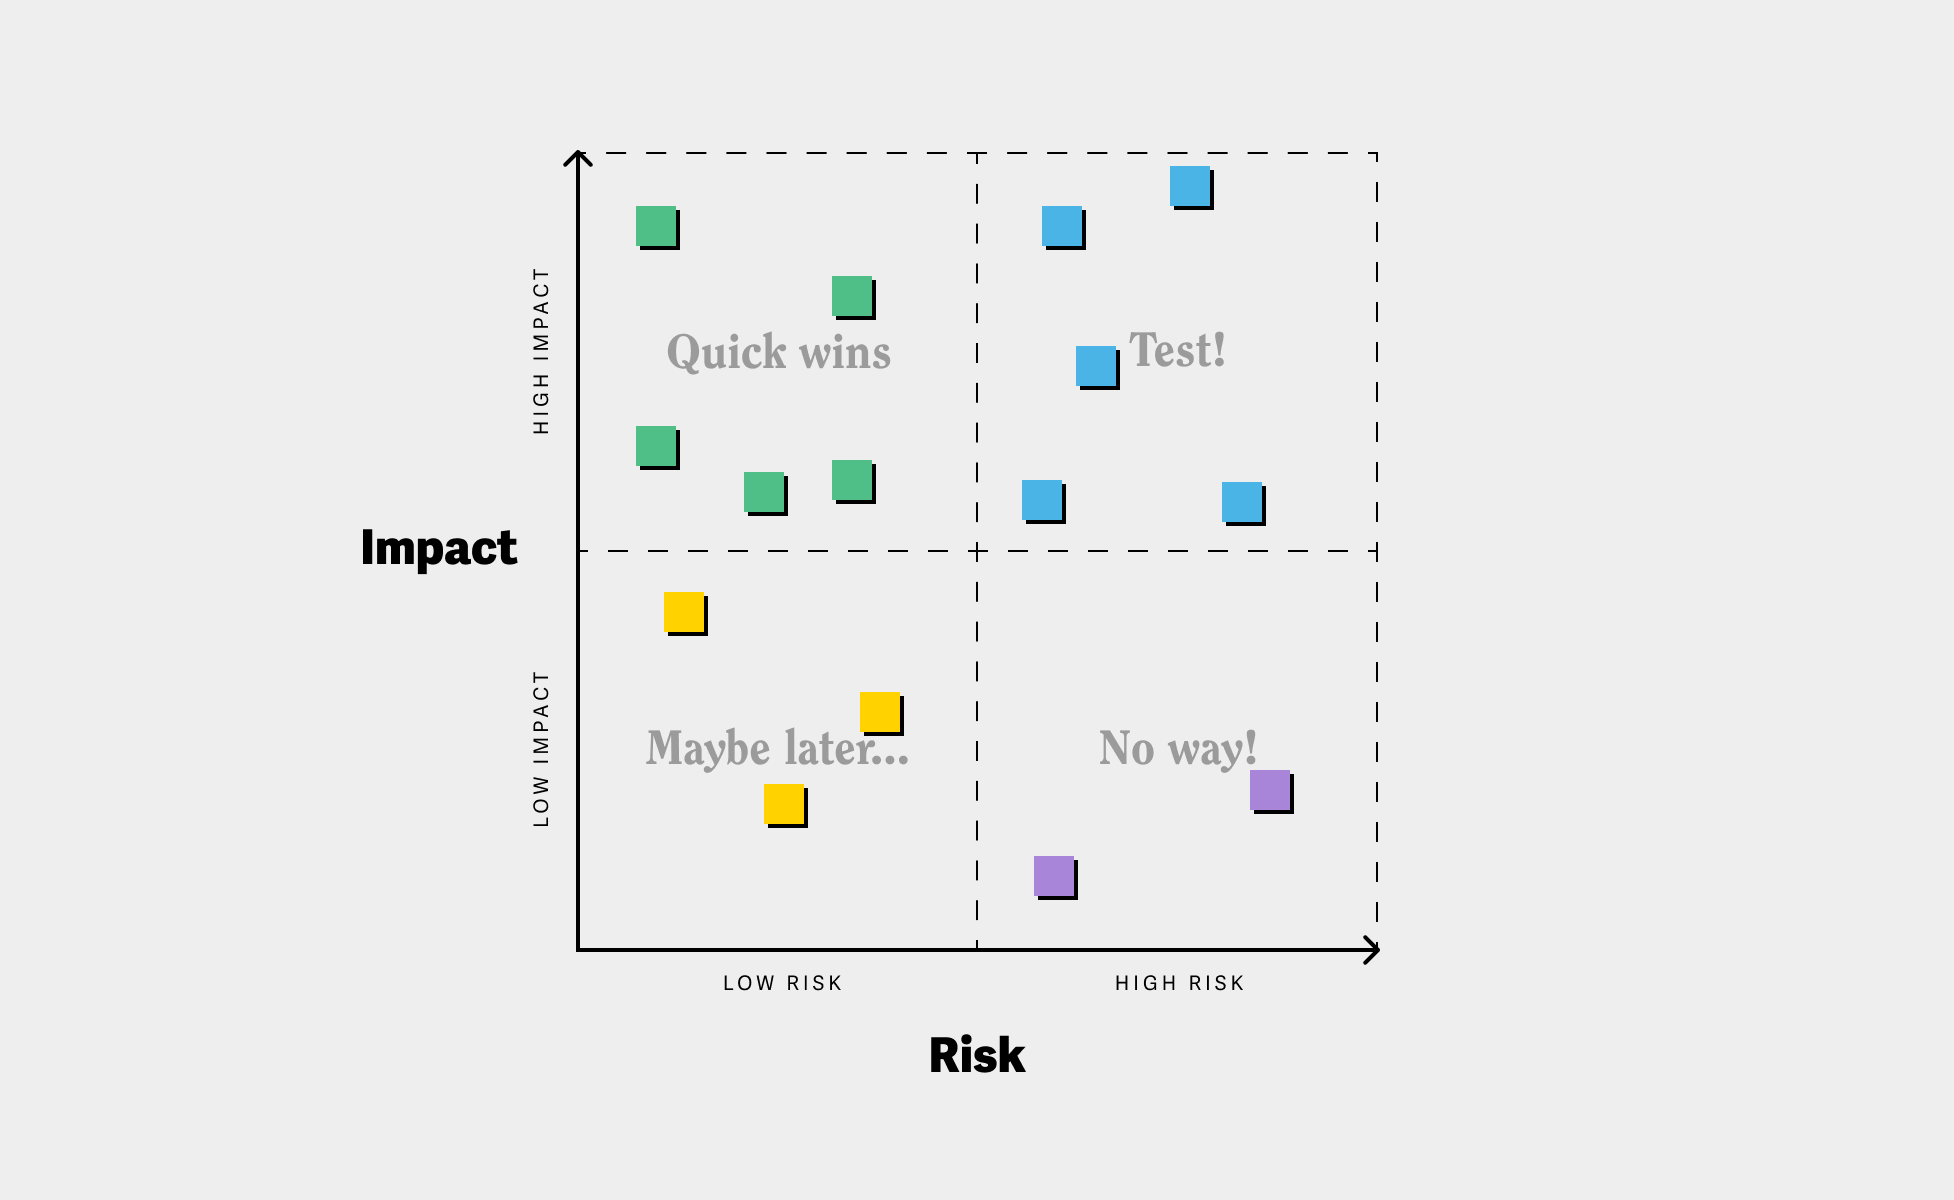 Example of how an impact-risk matrix